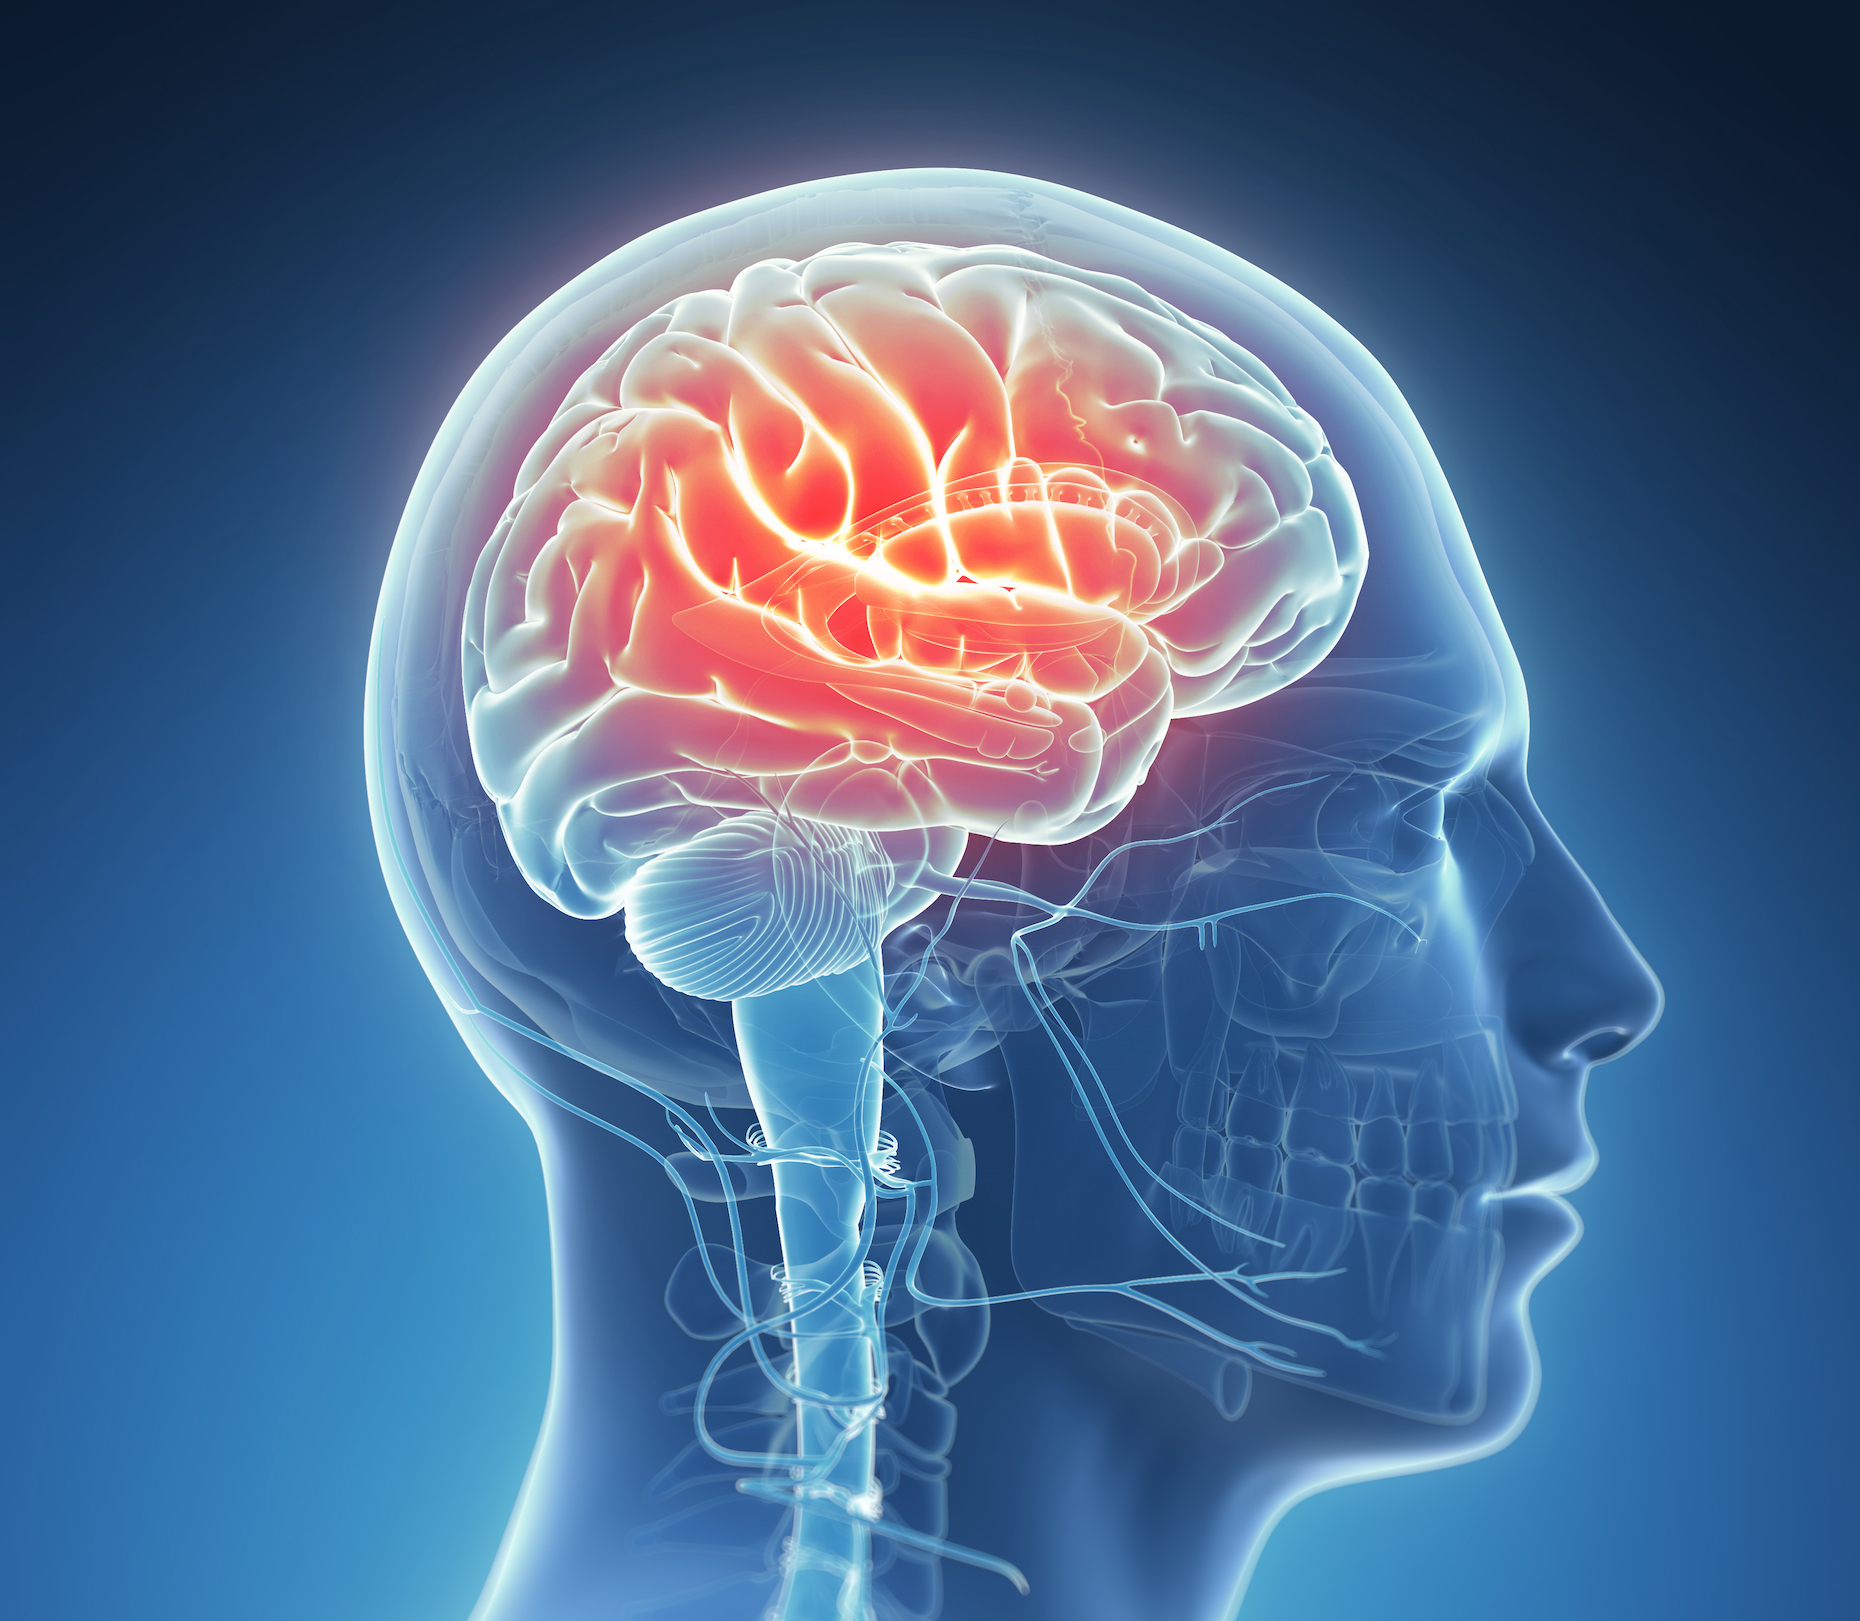 A recent study has shown that the number of brain cells – like neurons and glial cells – increases initially as we learn.